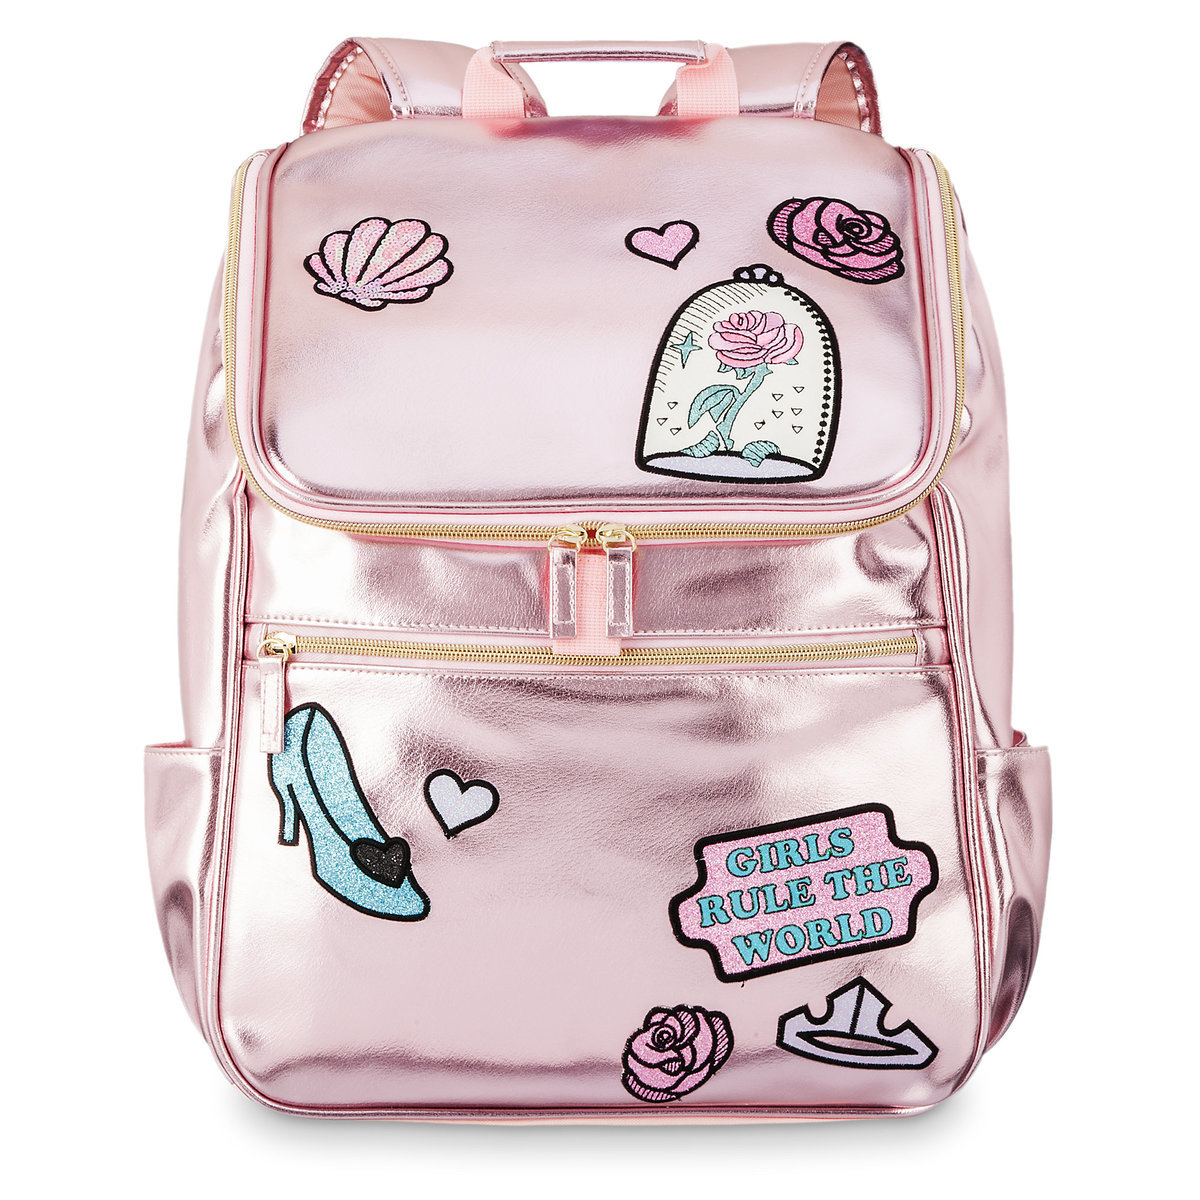 2d6cc824d58 Product Image of Disney Princess Icons Backpack for Kids   1